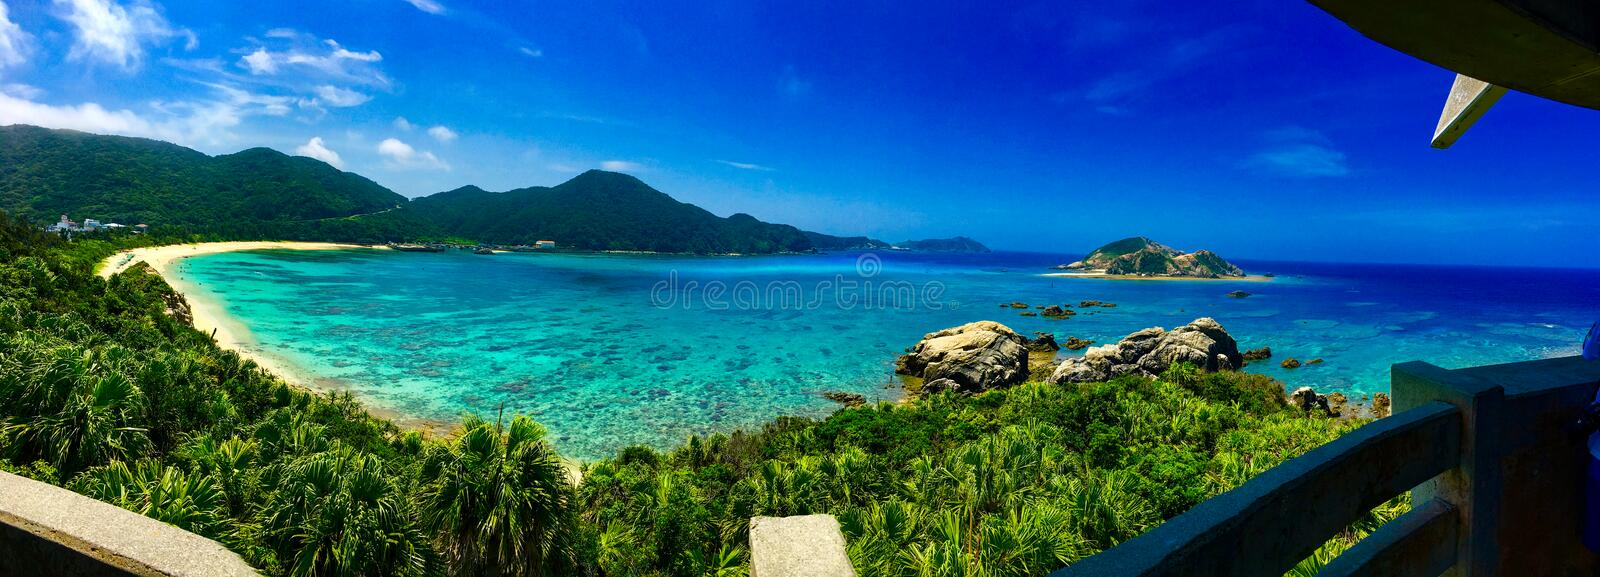 View Aharen beach in okinawa royalty free stock photography